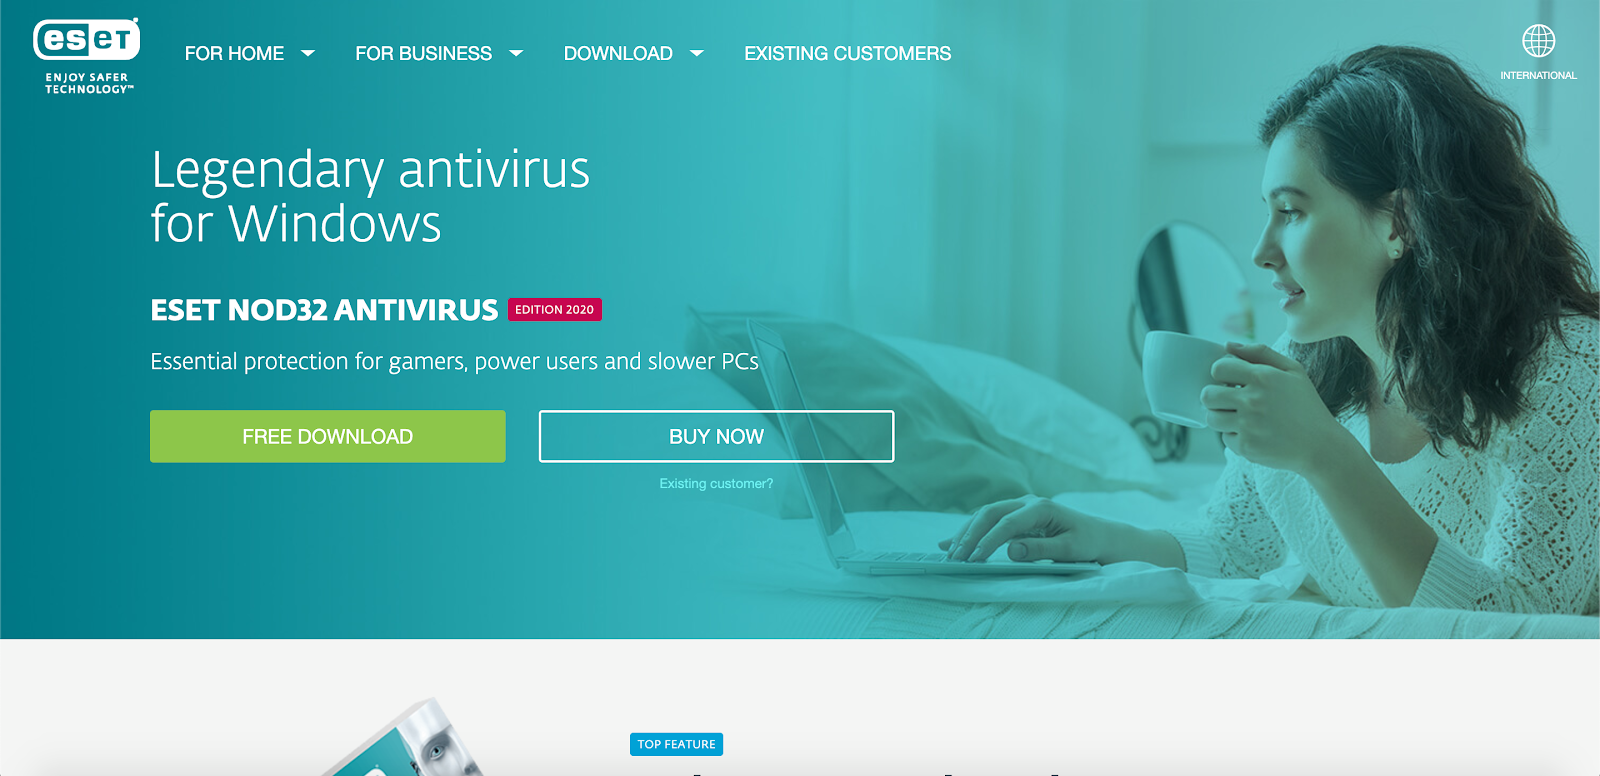 ESET NOD32 Antivirus 13.2.15.0 Crack Plus License key 2020 Download